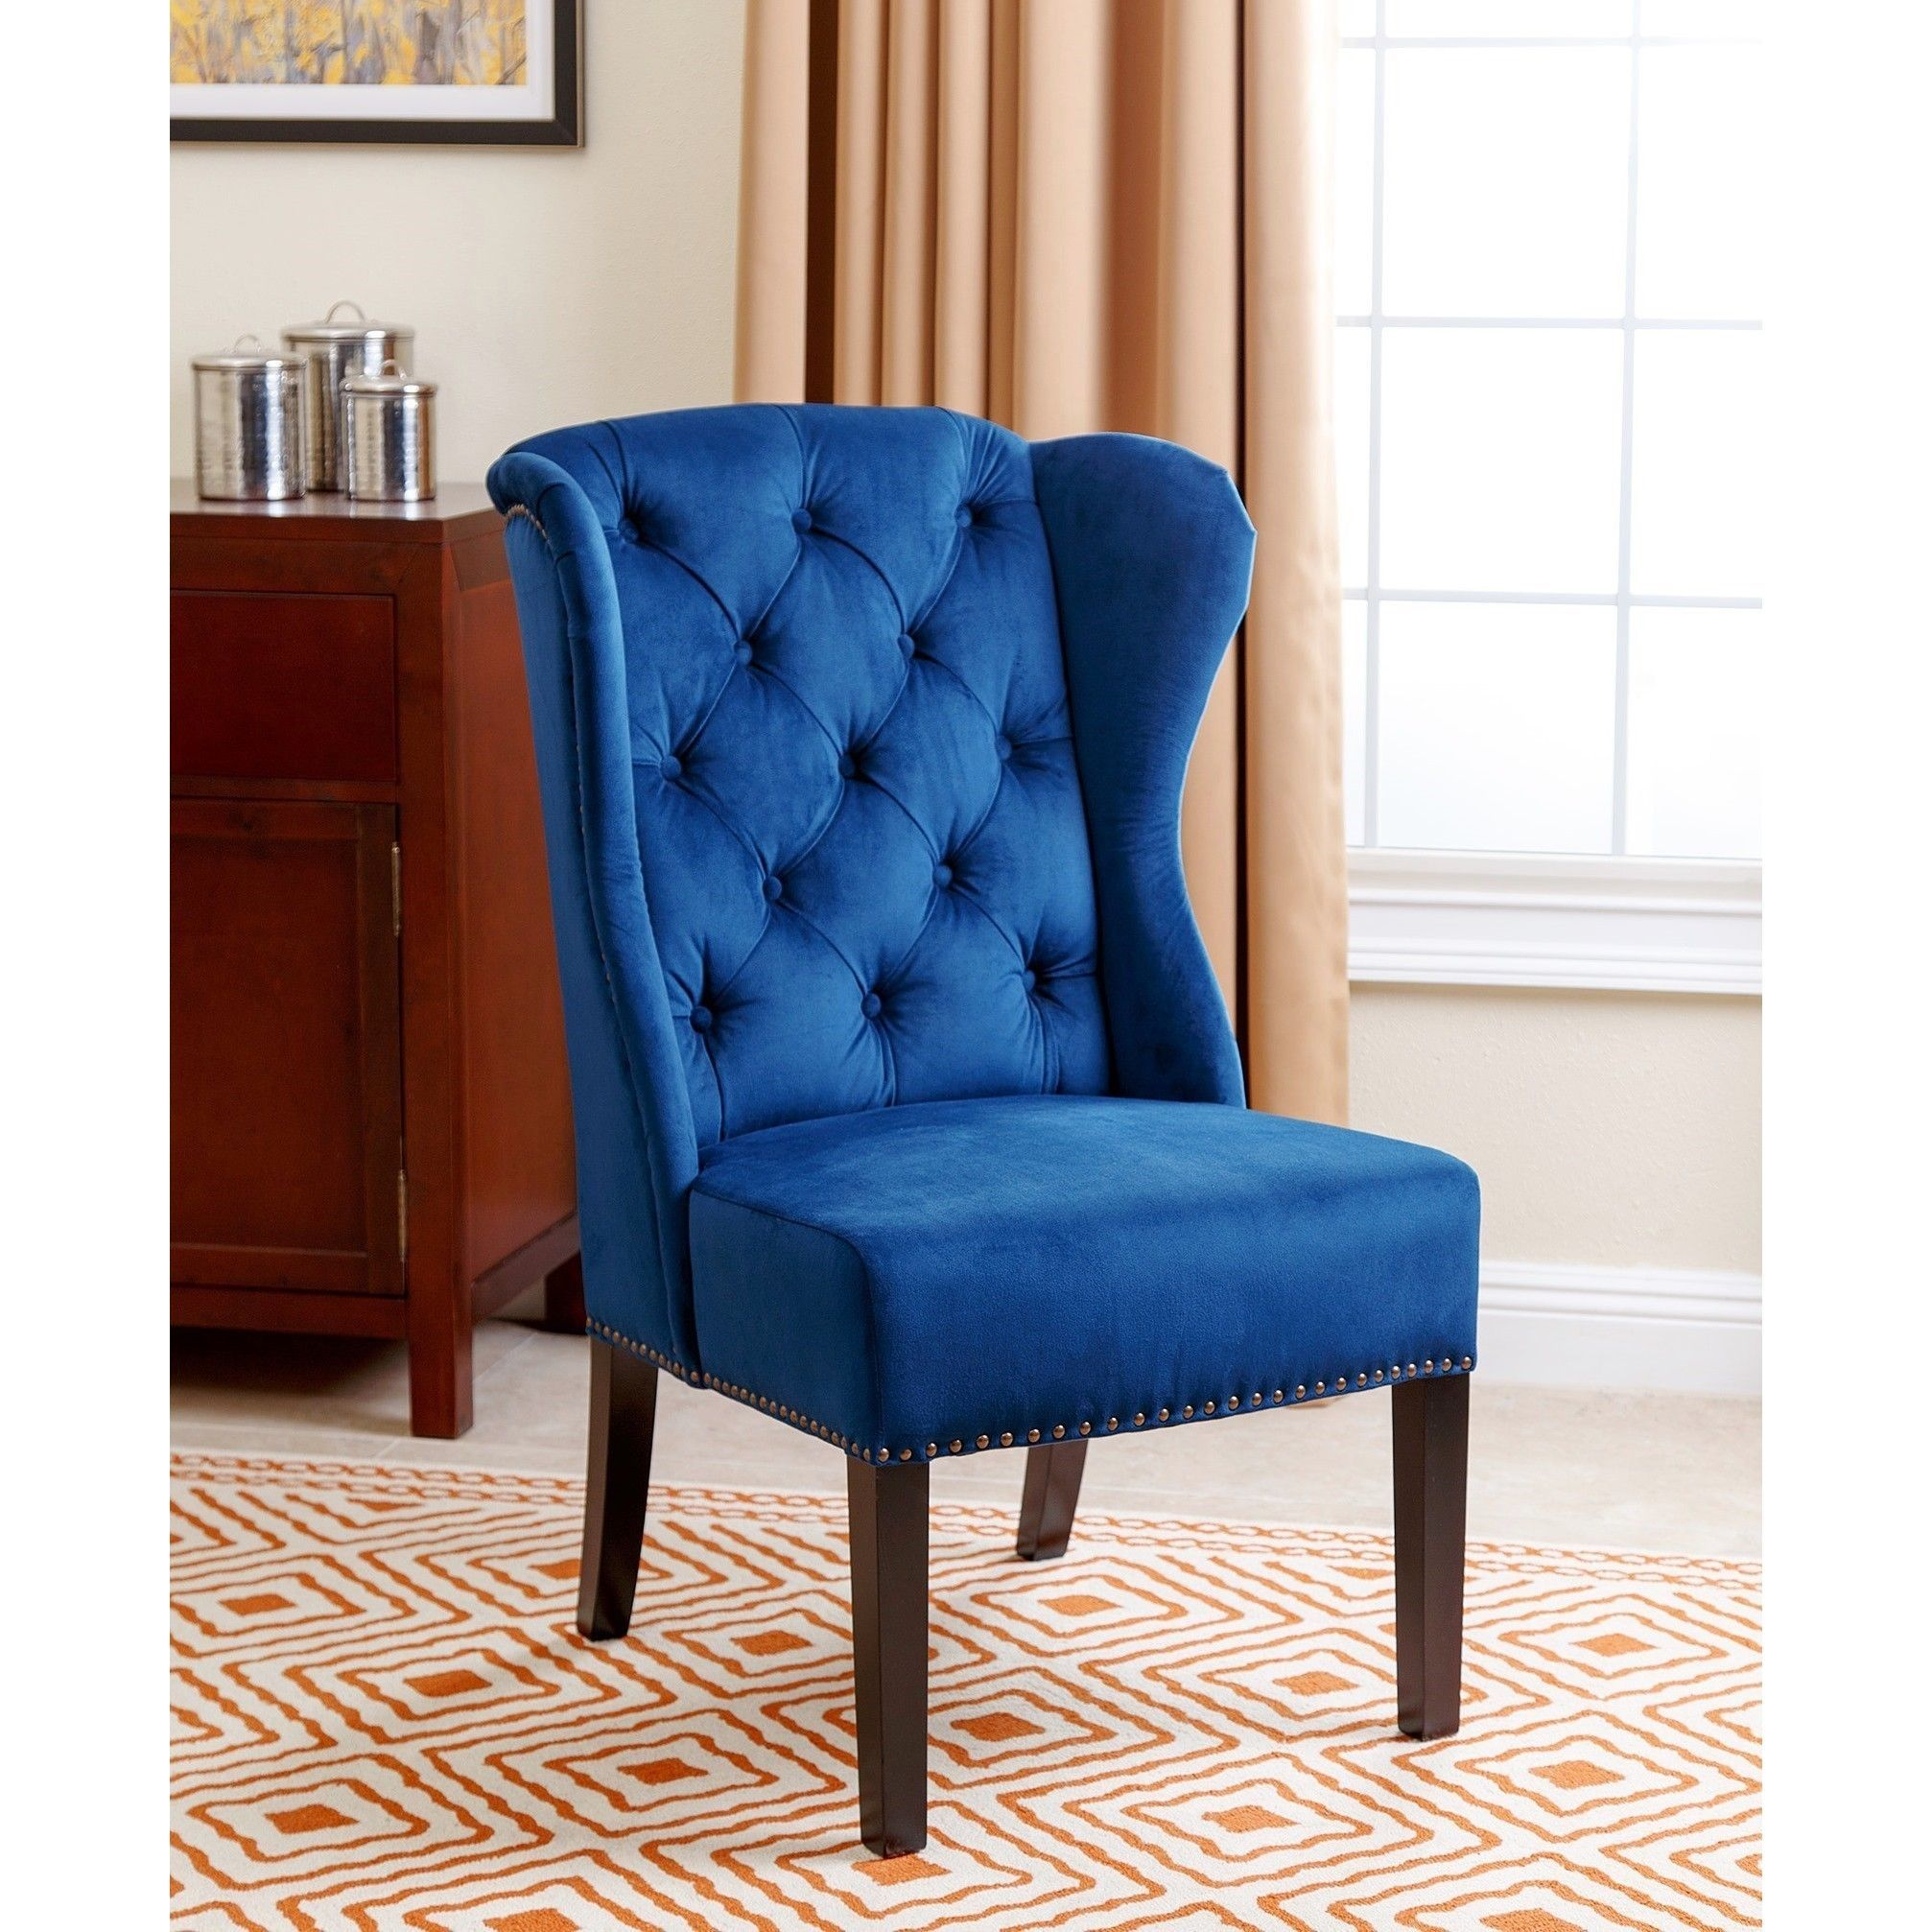 abbyson sierra tufted navy blue velvet wingback dining chair by abbyson